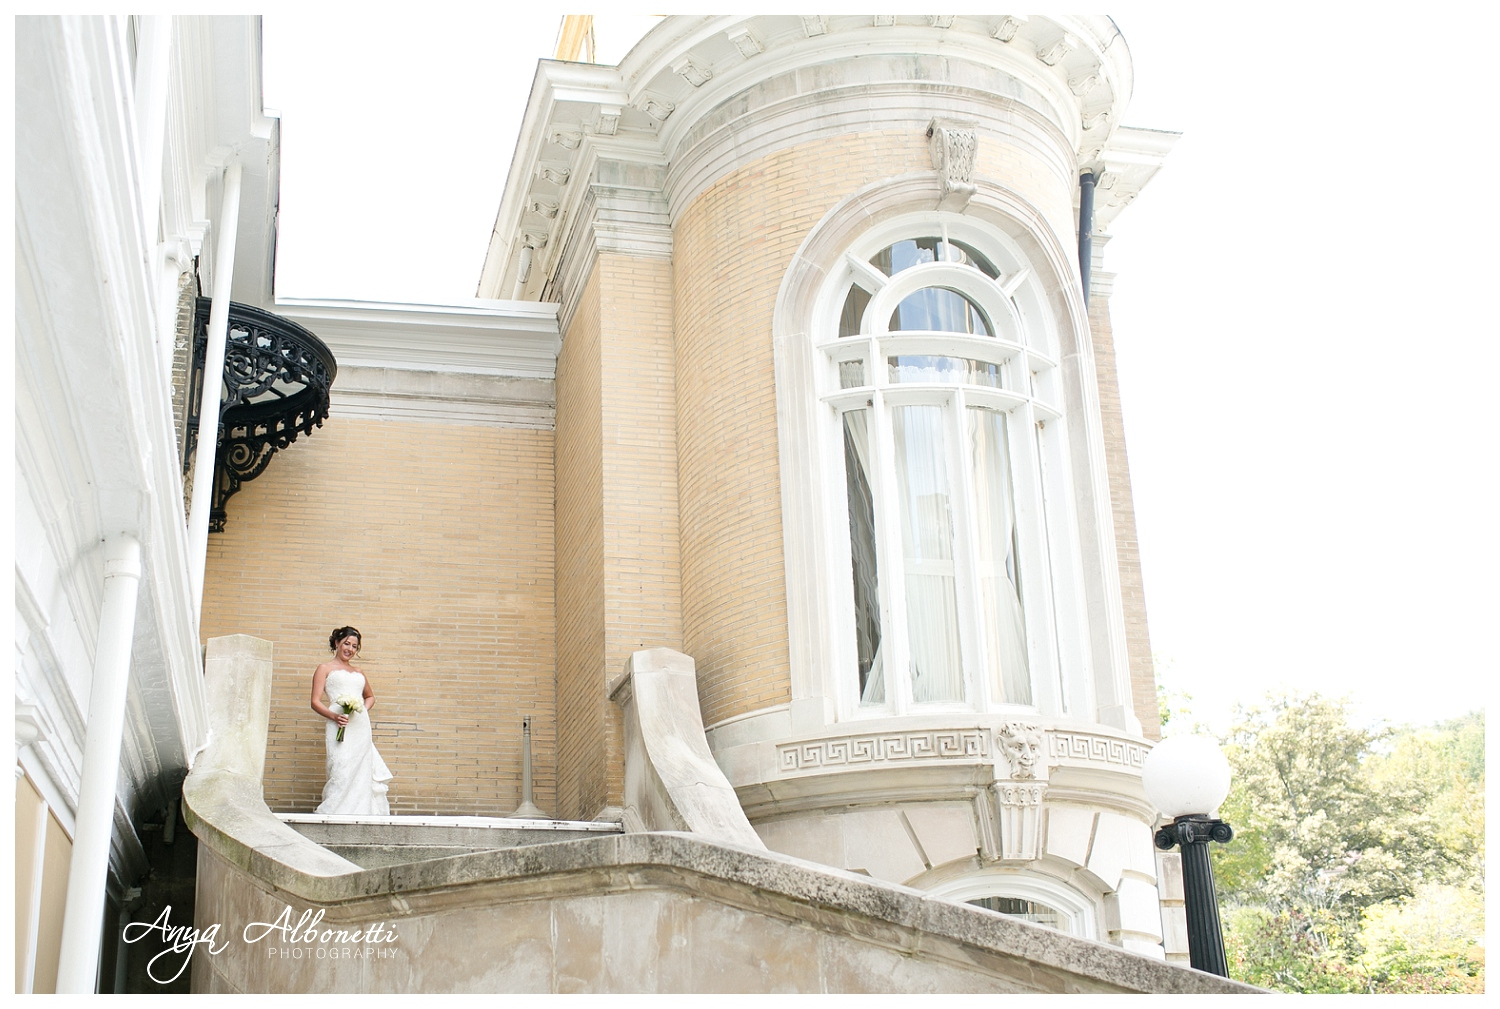 French Lick Marriage License Office